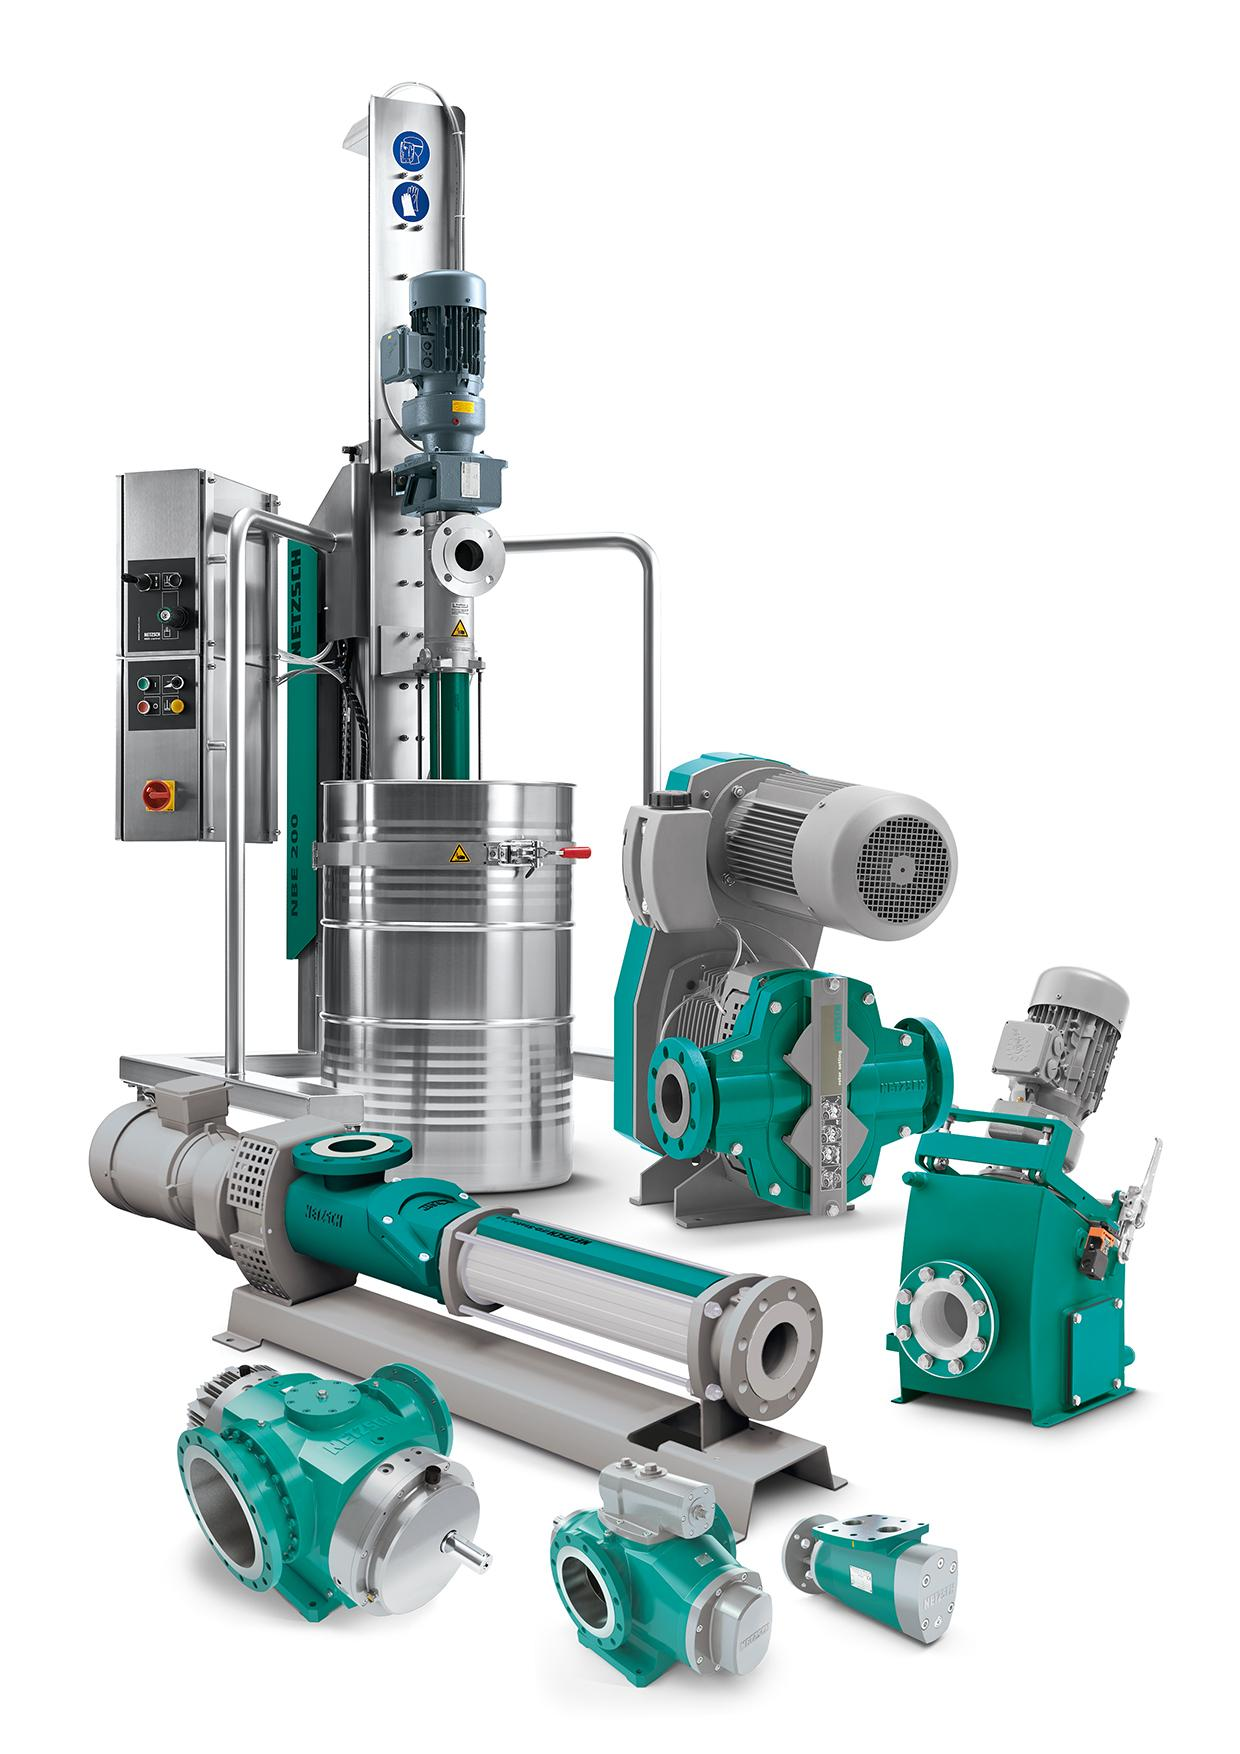 NETZSCH products for difficult applications in all industries